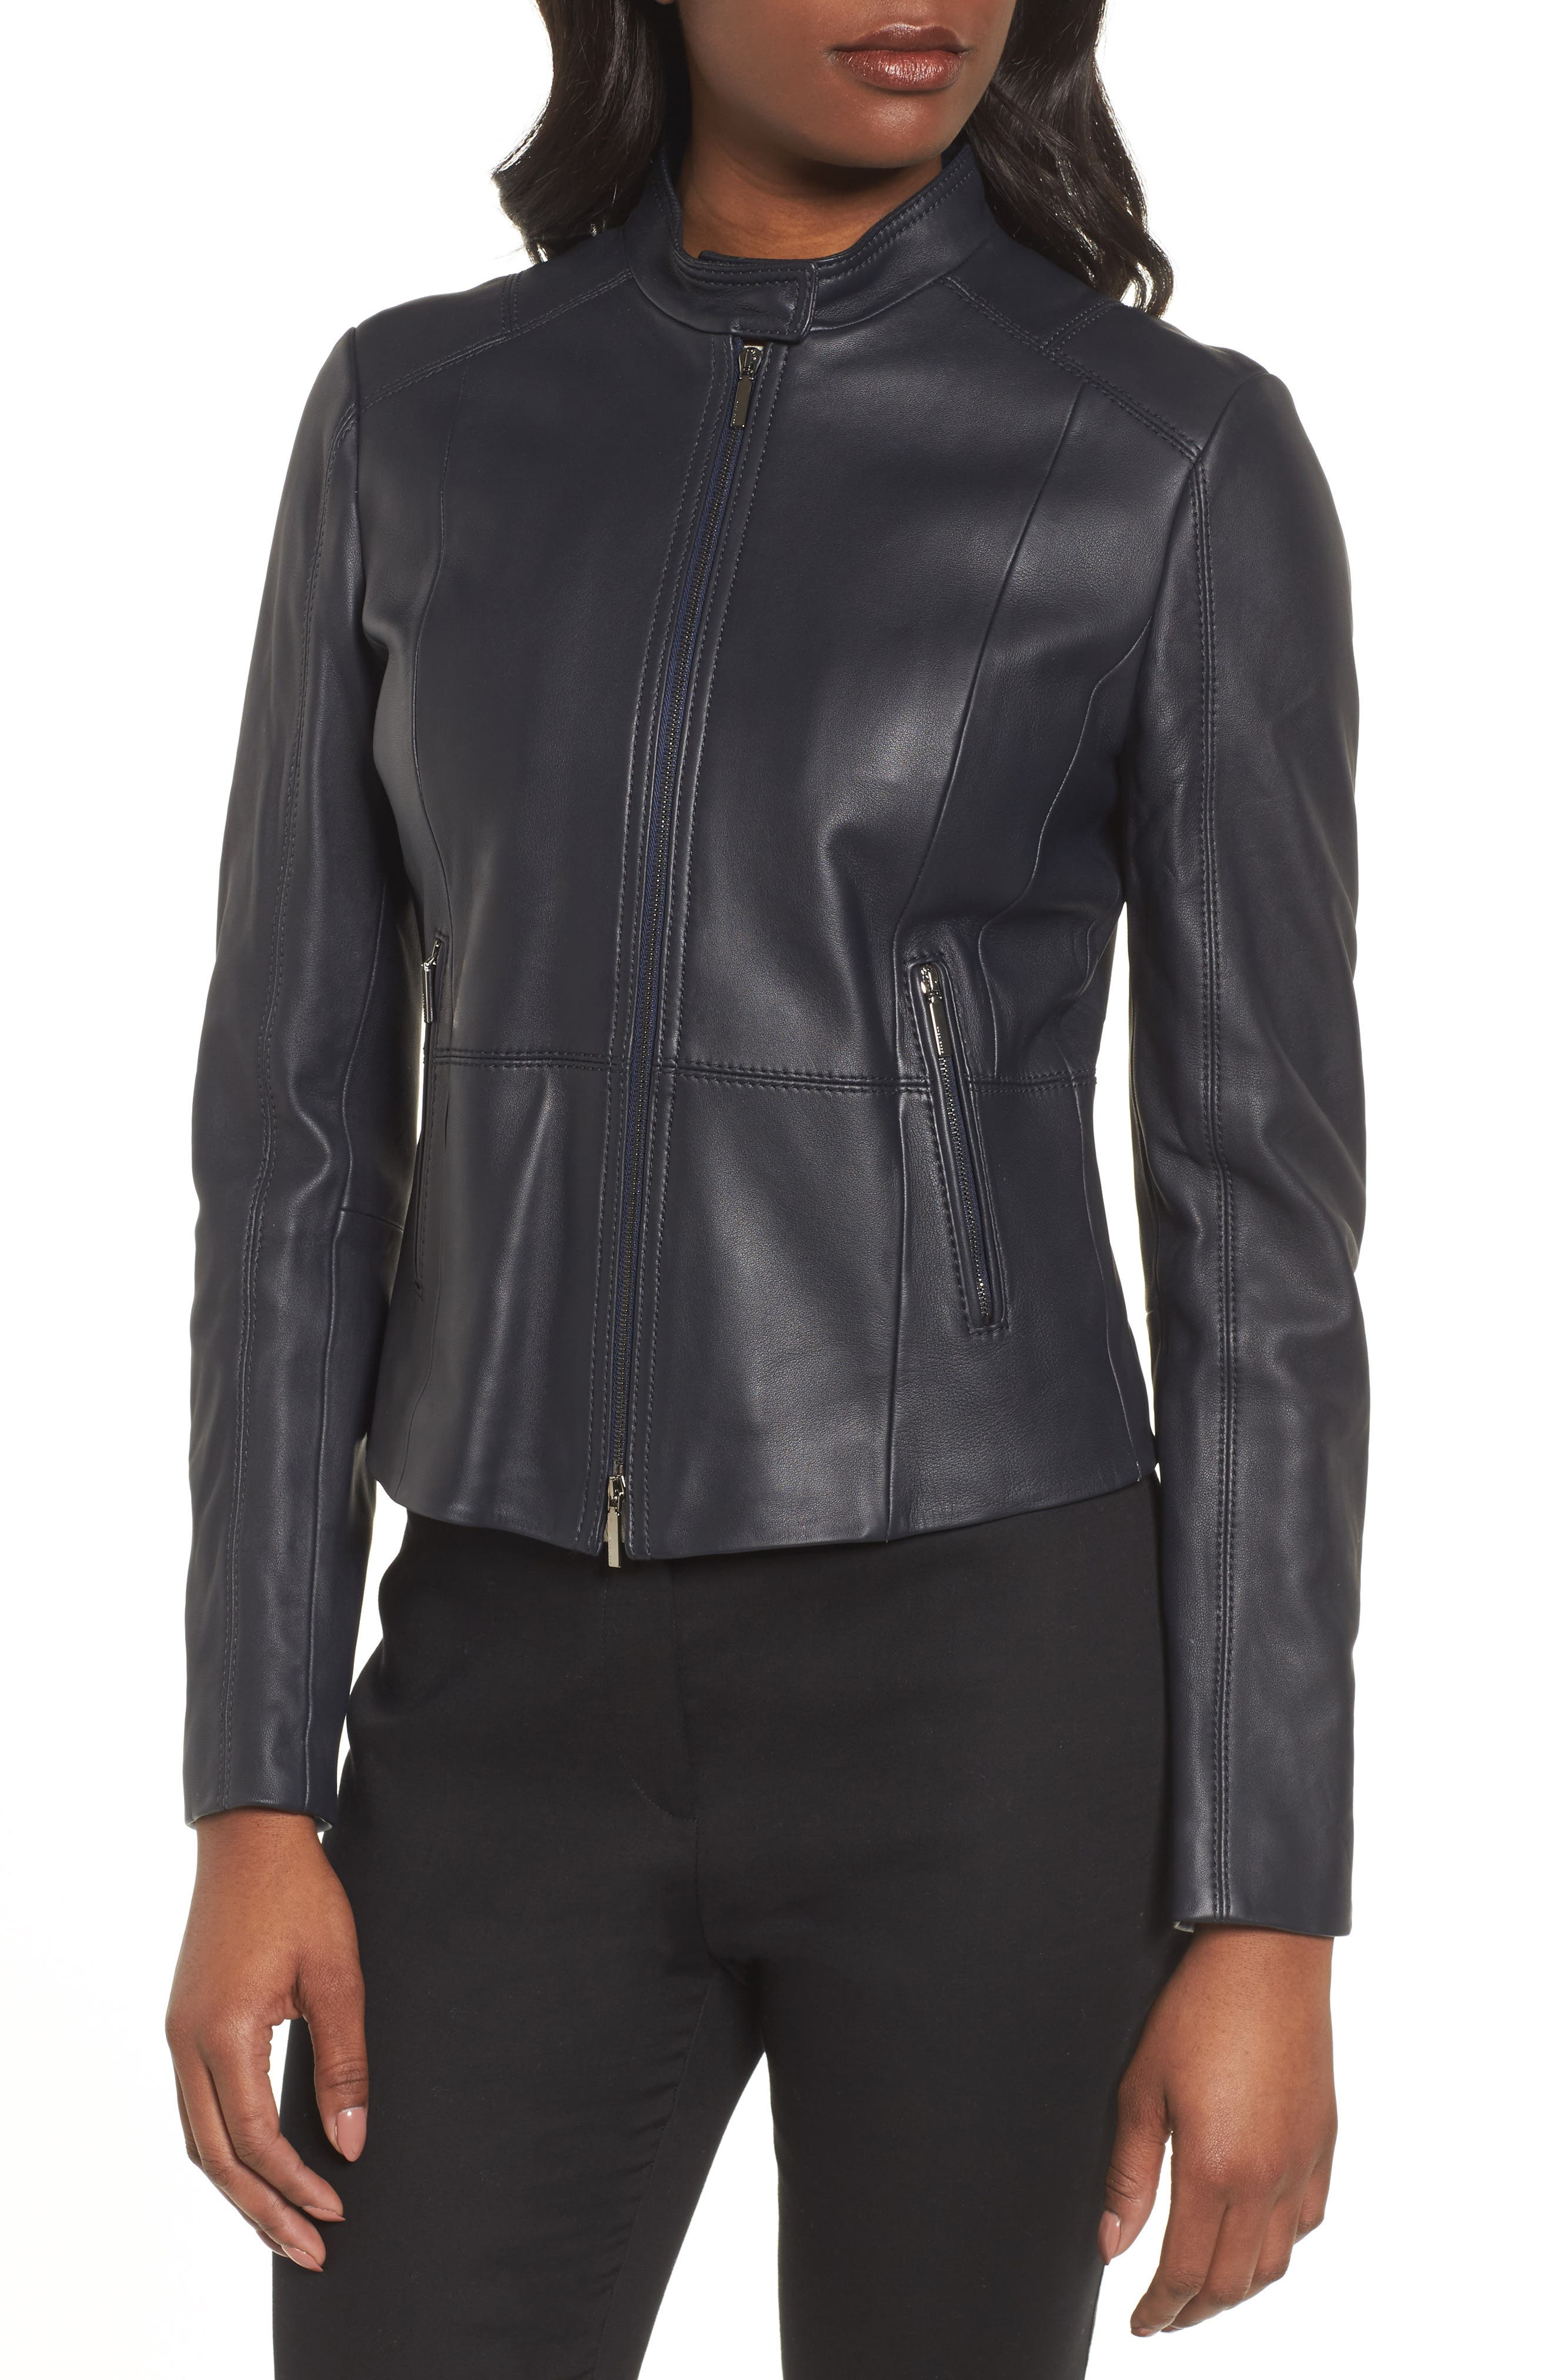 Sammonaie Leather Jacket,                             Alternate thumbnail 4, color,                             480